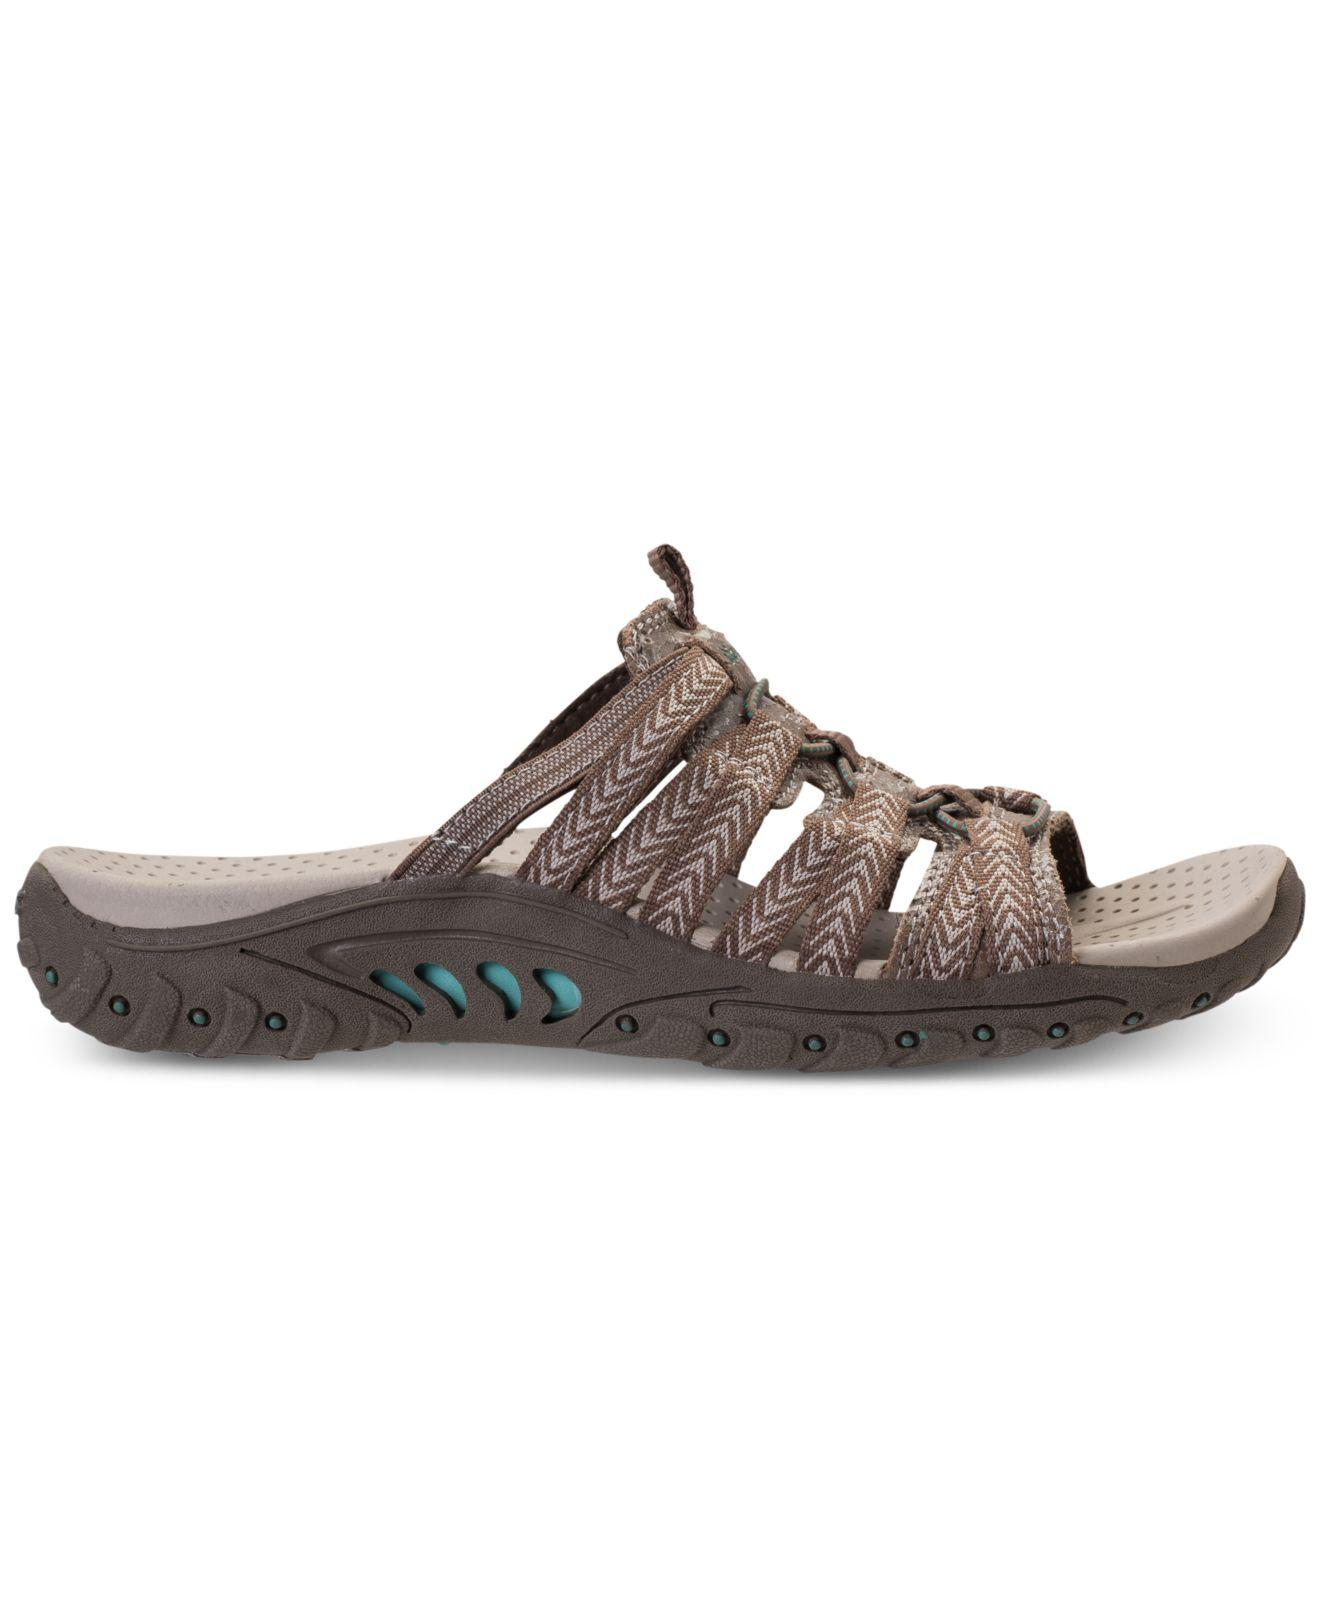 c1d95ab7cff Lyst - Skechers Reggae - Repetition Athletic Sandals From Finish Line in  Brown